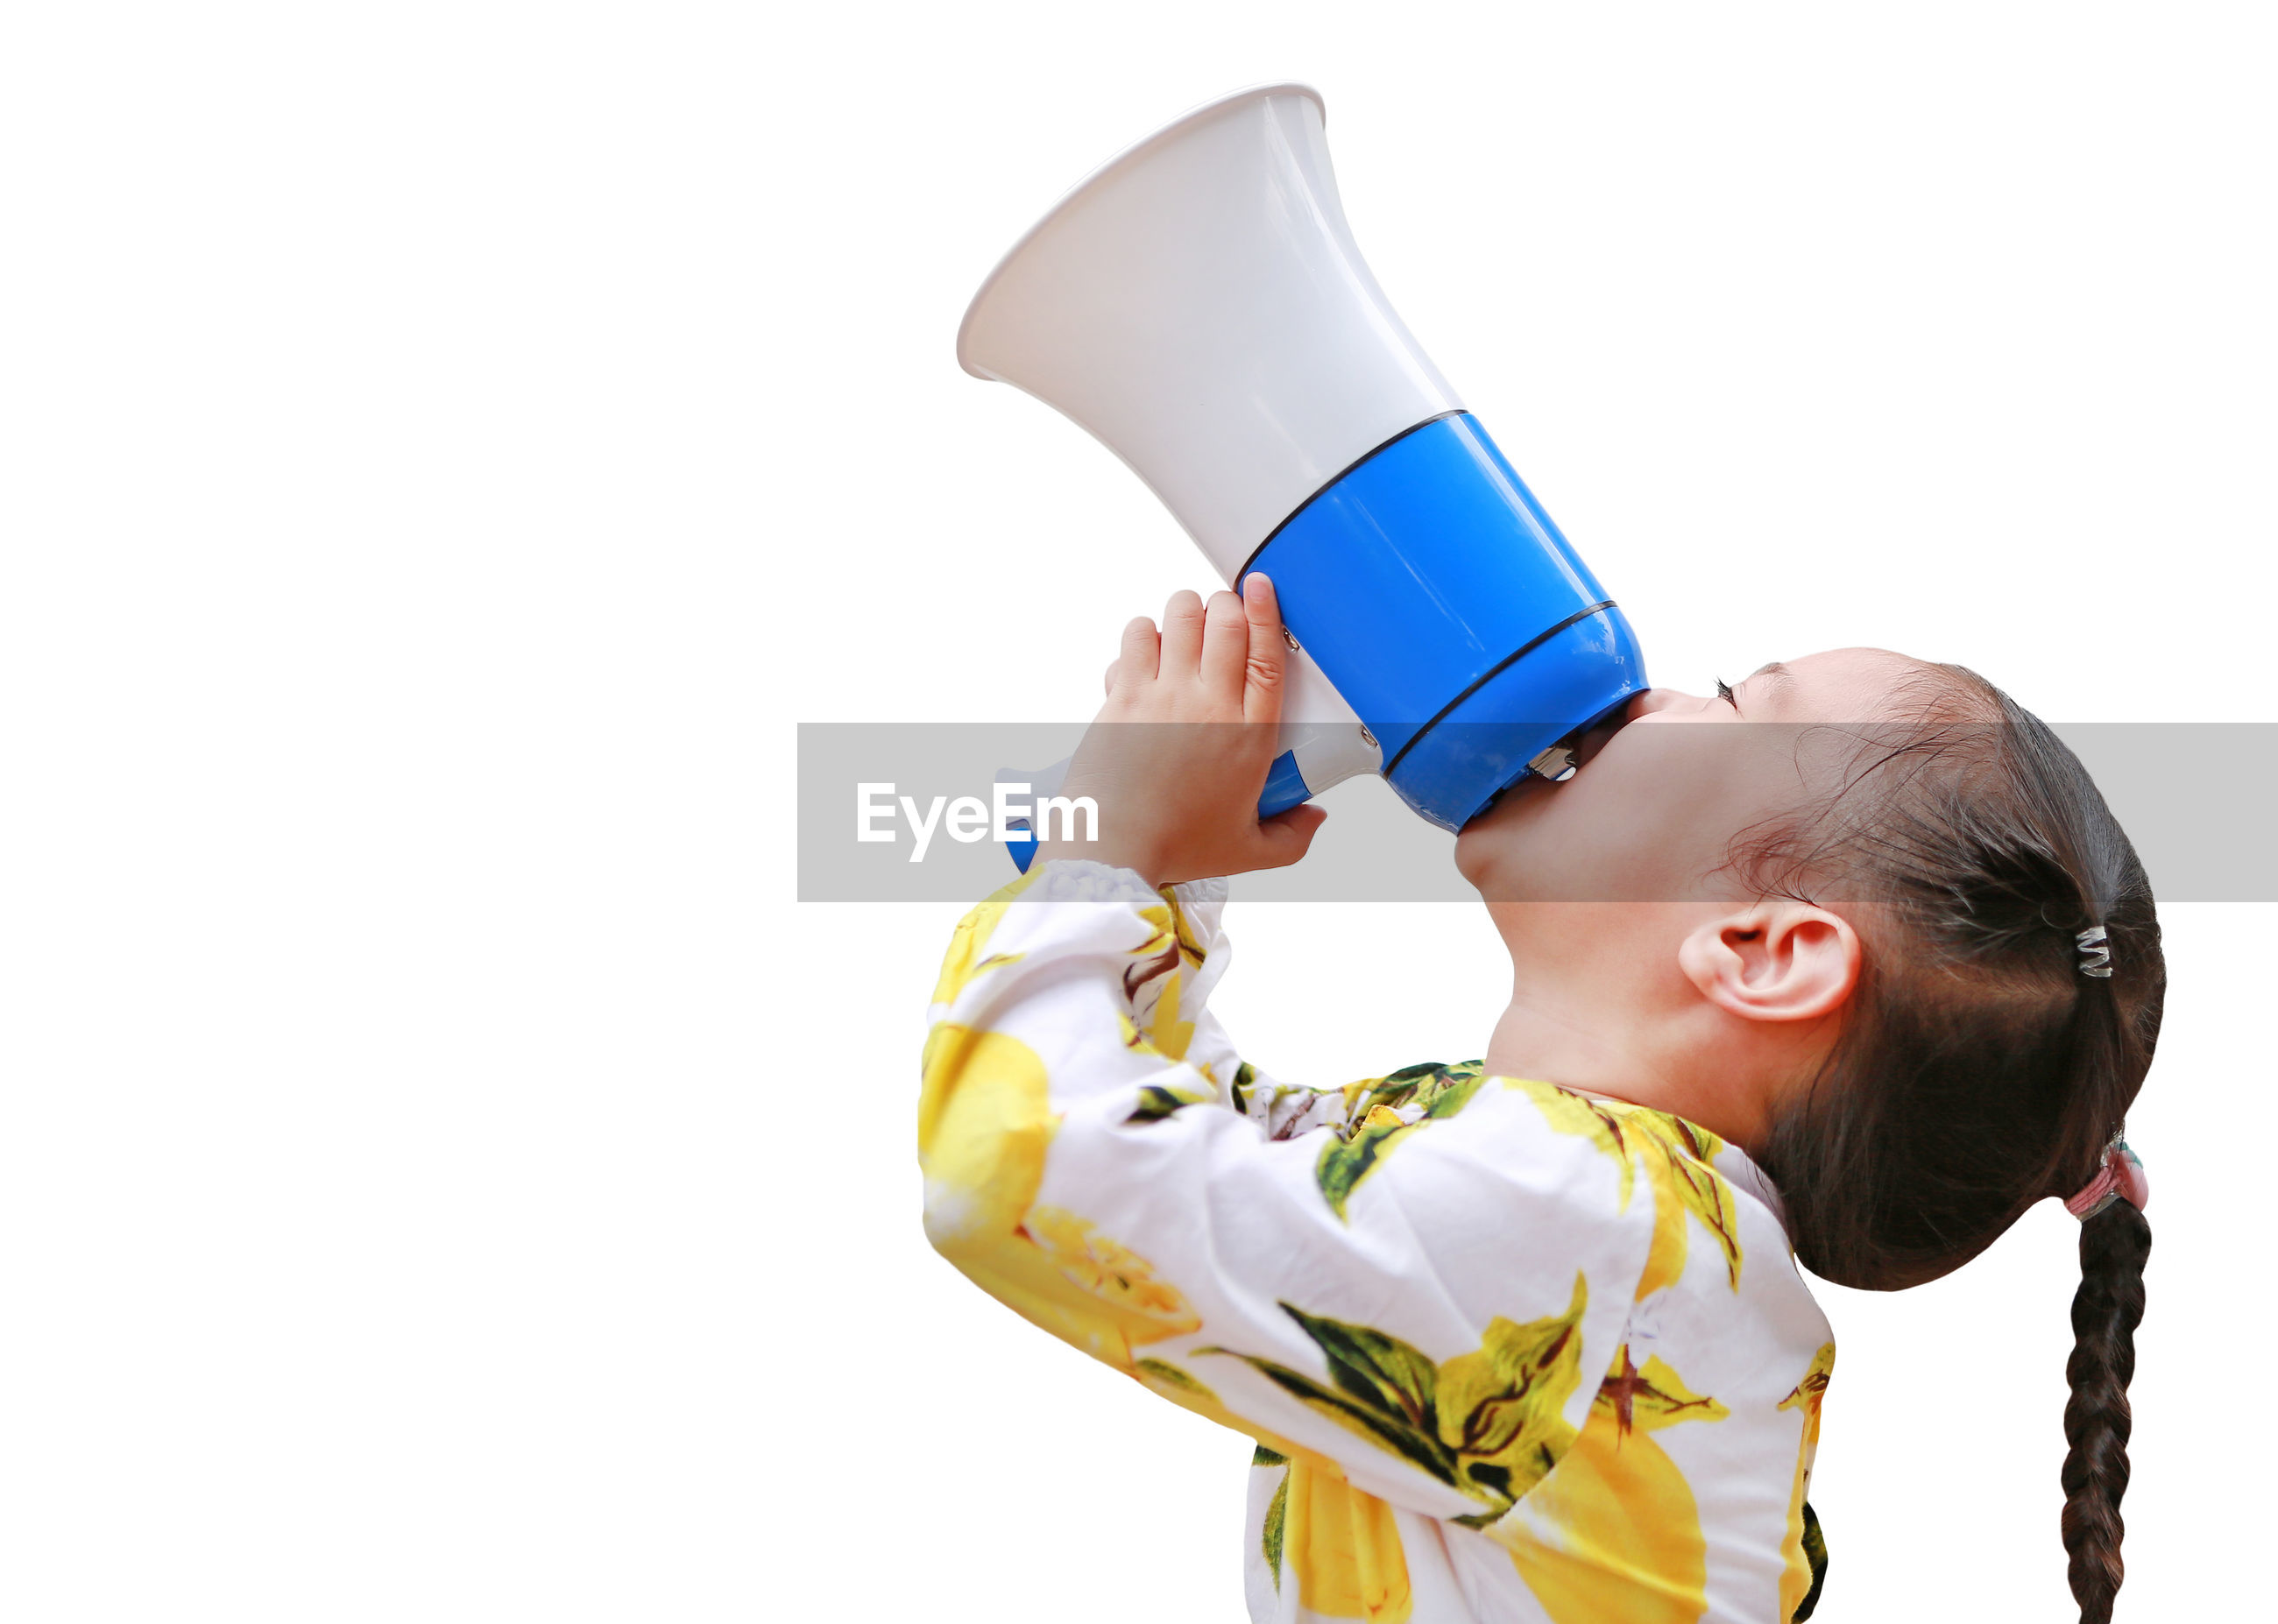 Side view of girl screaming in megaphone against white background